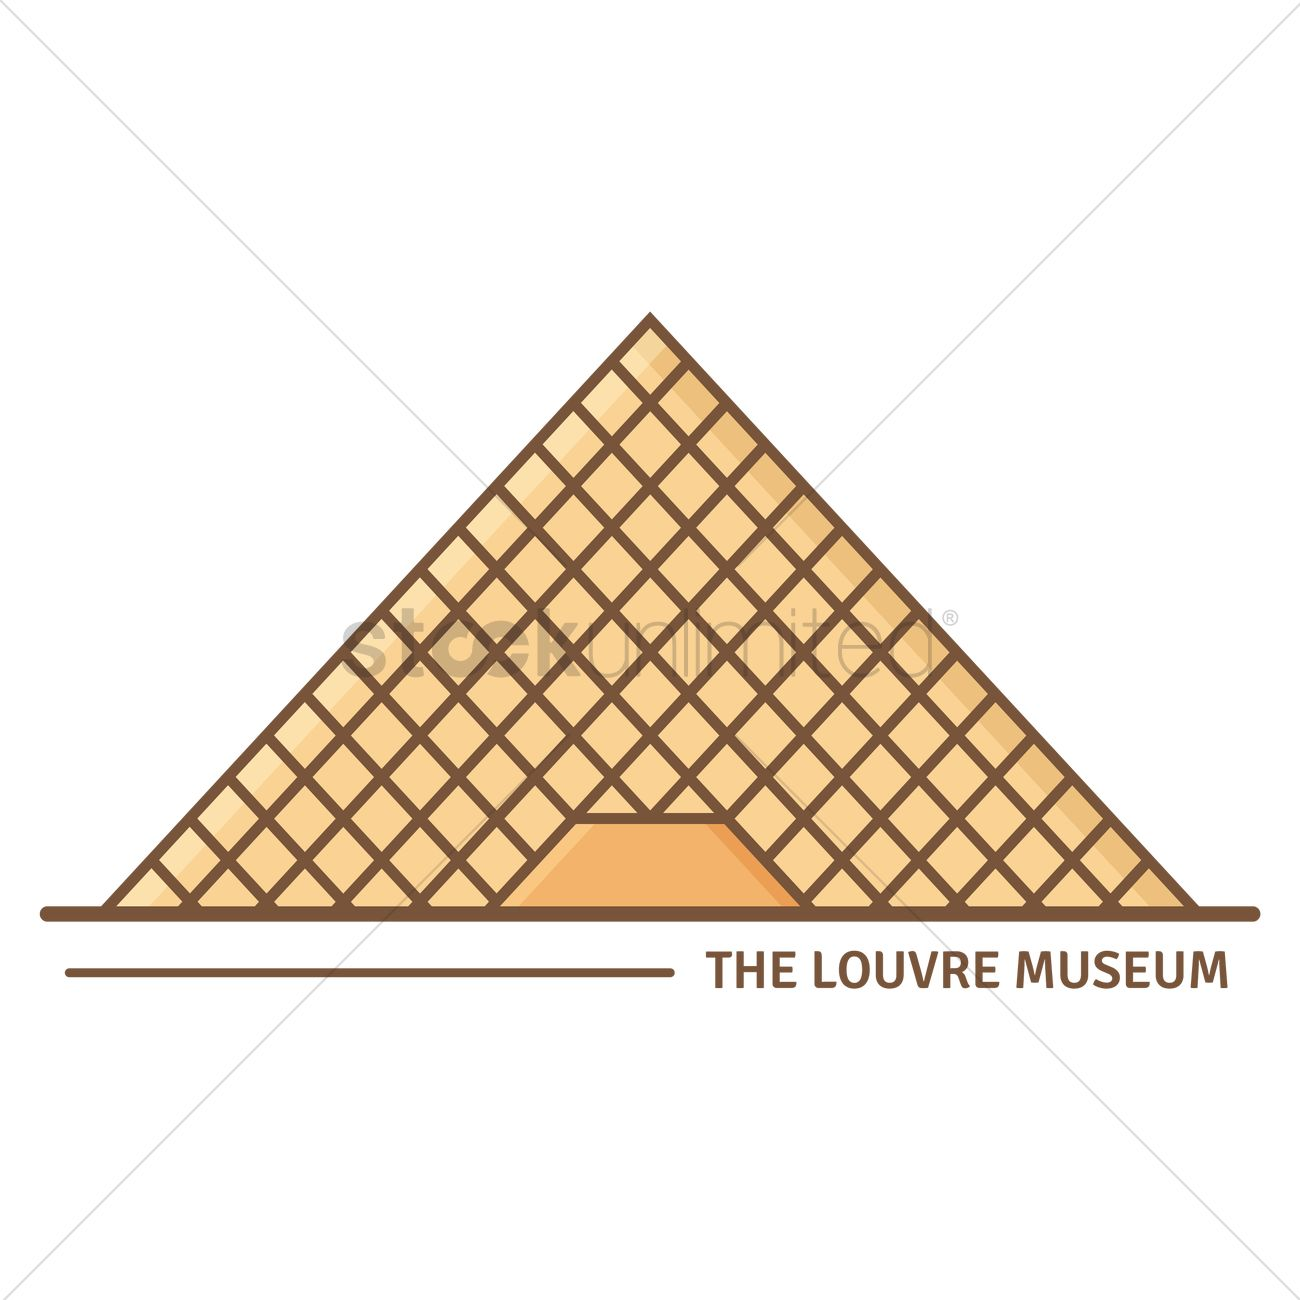 the louvre museum vector image 1570373 stockunlimited rh stockunlimited com louvre pyramid clip art Mona Lisa Clip Art